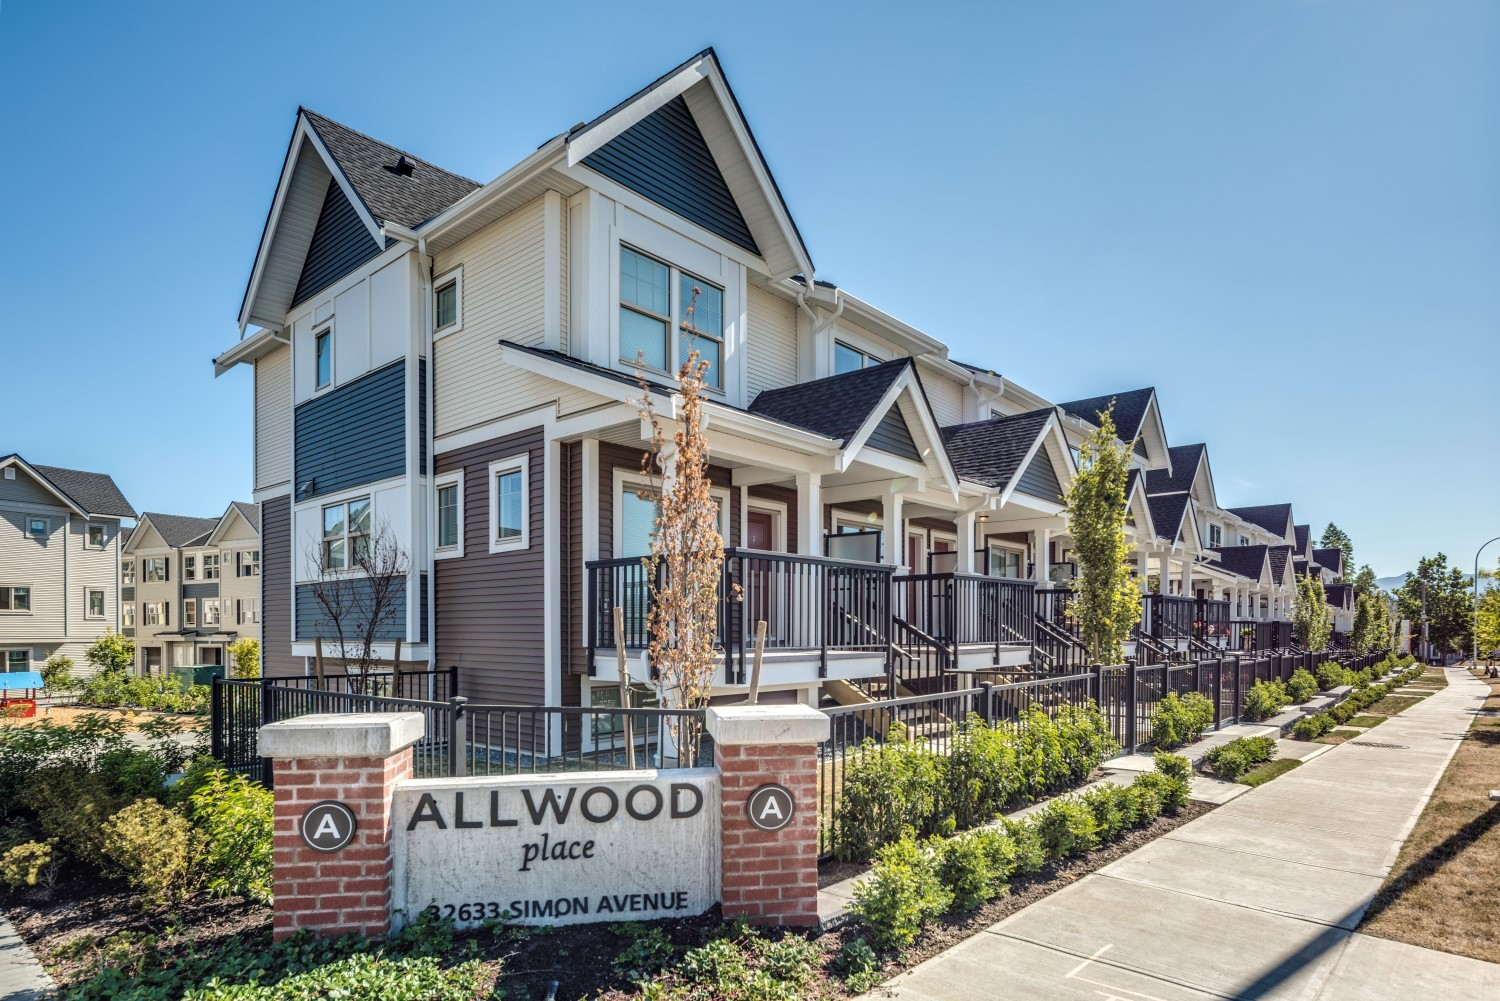 Allwood-Place-10-Carsten-Arnold-Photography.jpg